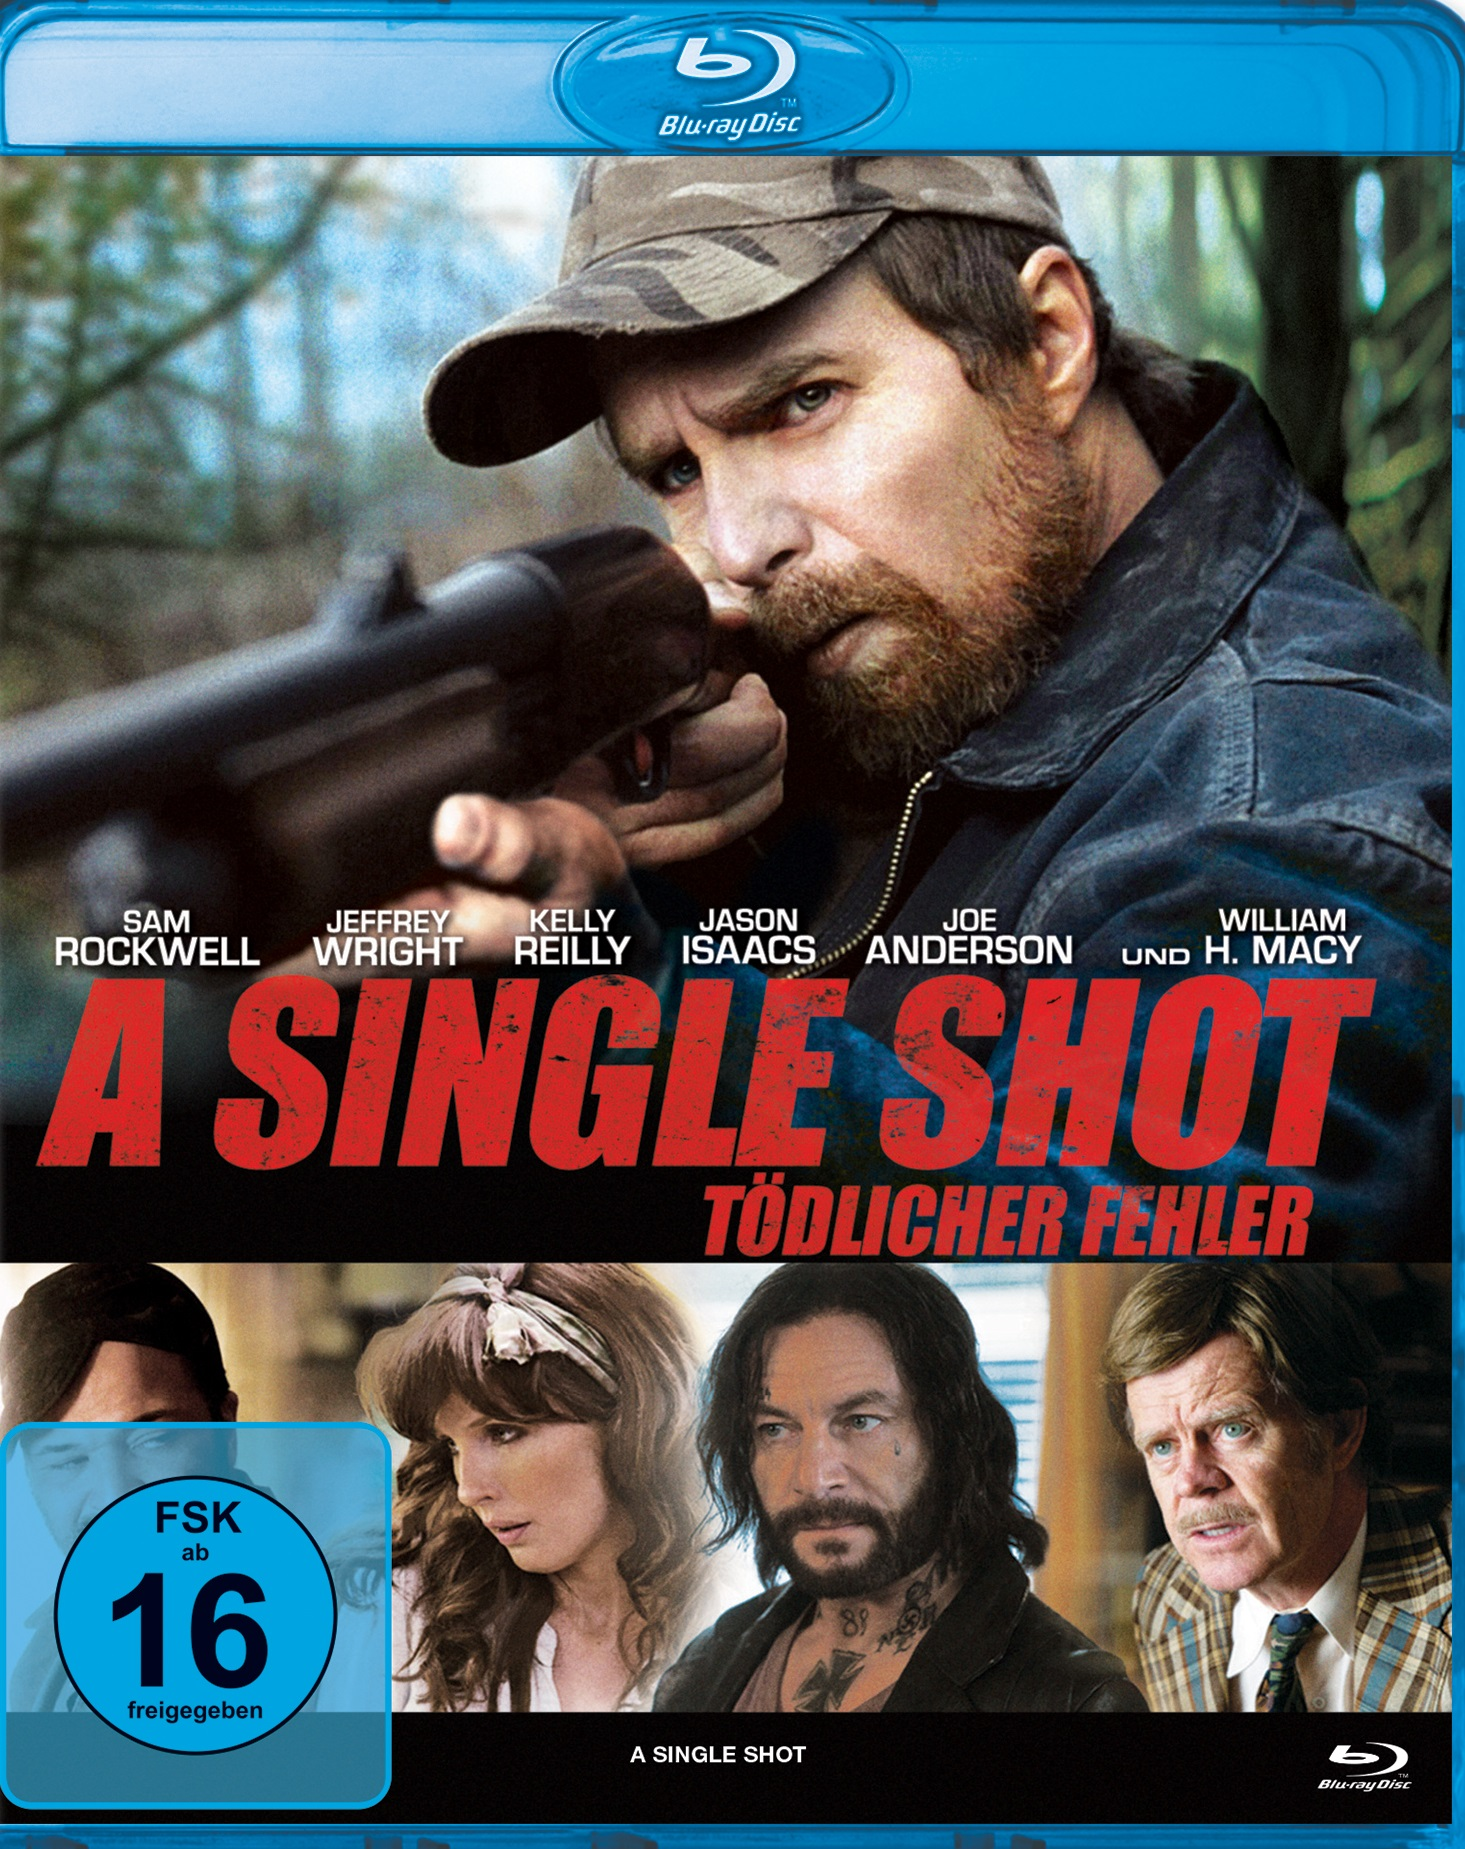 a single shot parental review A single shot, aimed at a lone deer, that hits and kills a young woman find theater showtimes, watch trailers, read reviews and buy movie tickets in advance.